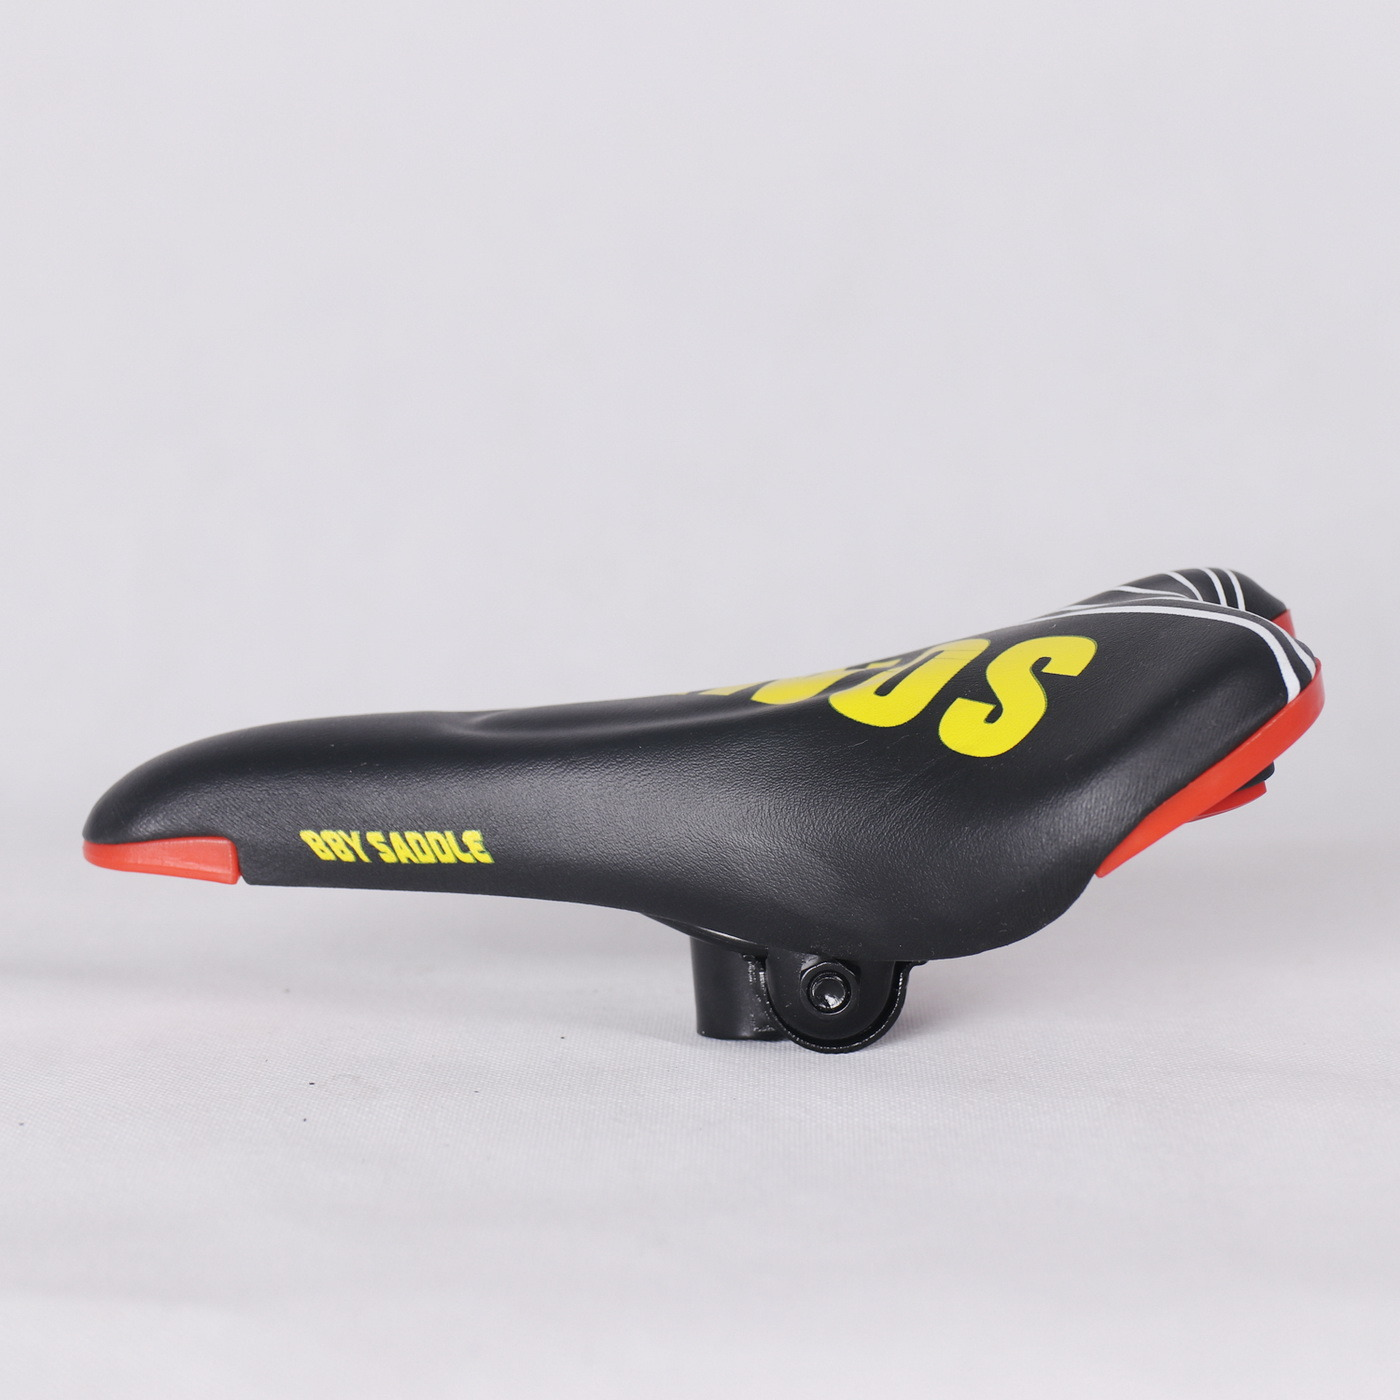 Most Popular Fatory Direct Mountain Bicycle Saddle (9175) pictures & photos